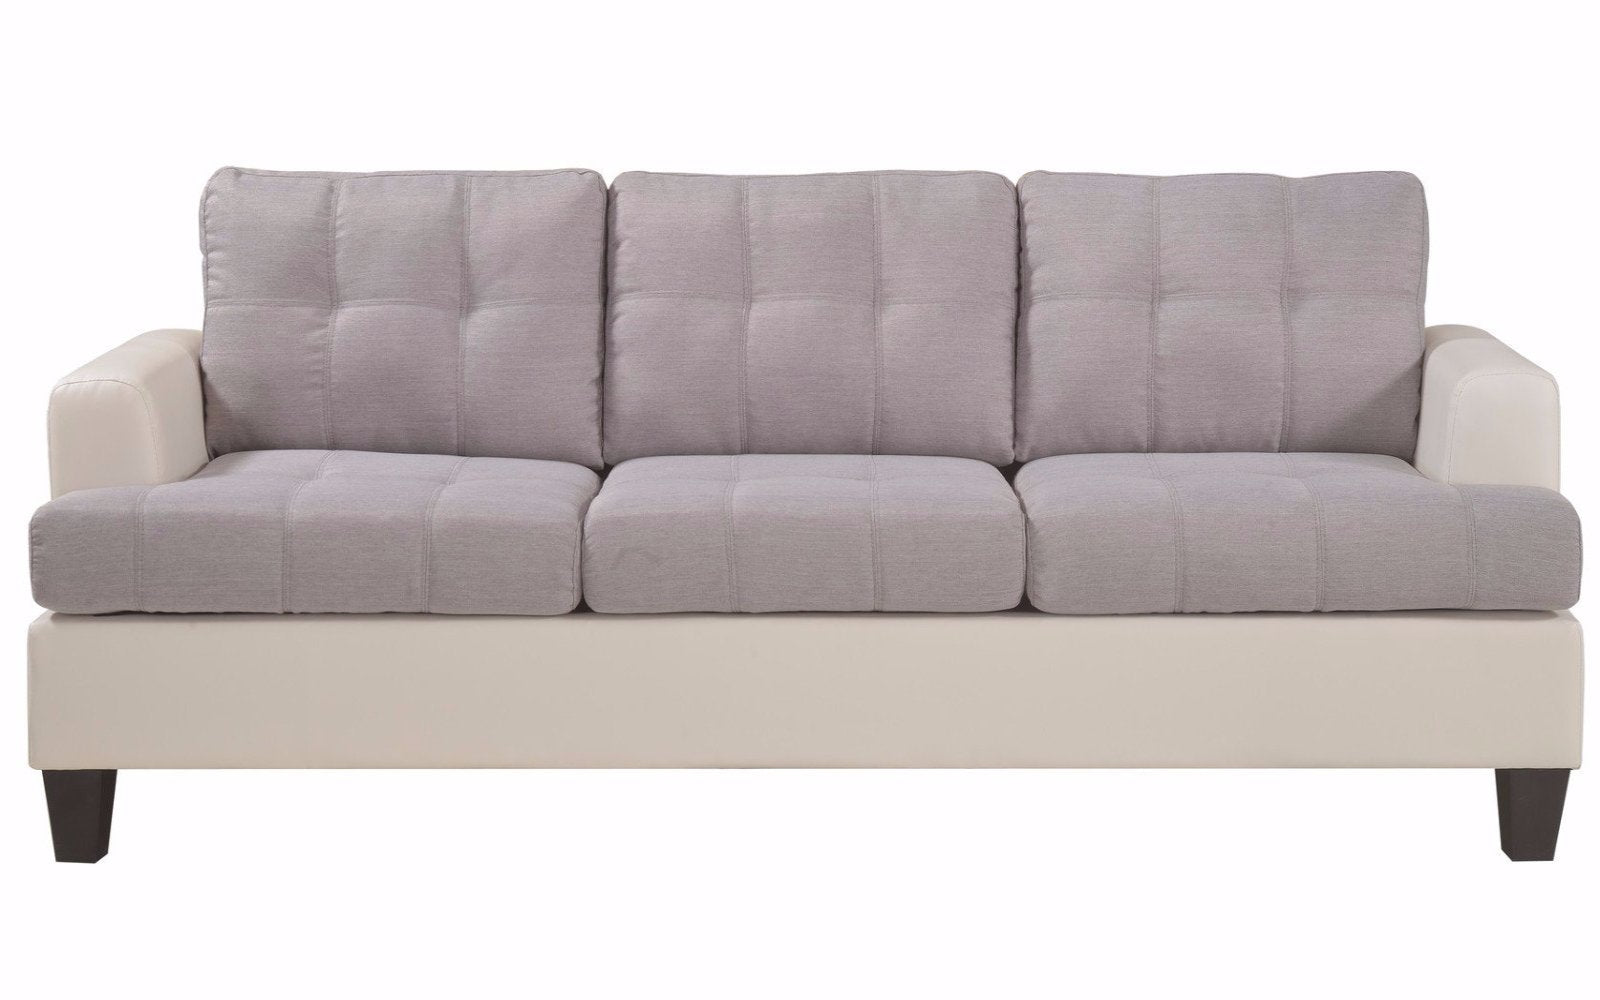 Linen Living Room Sofa Set Image